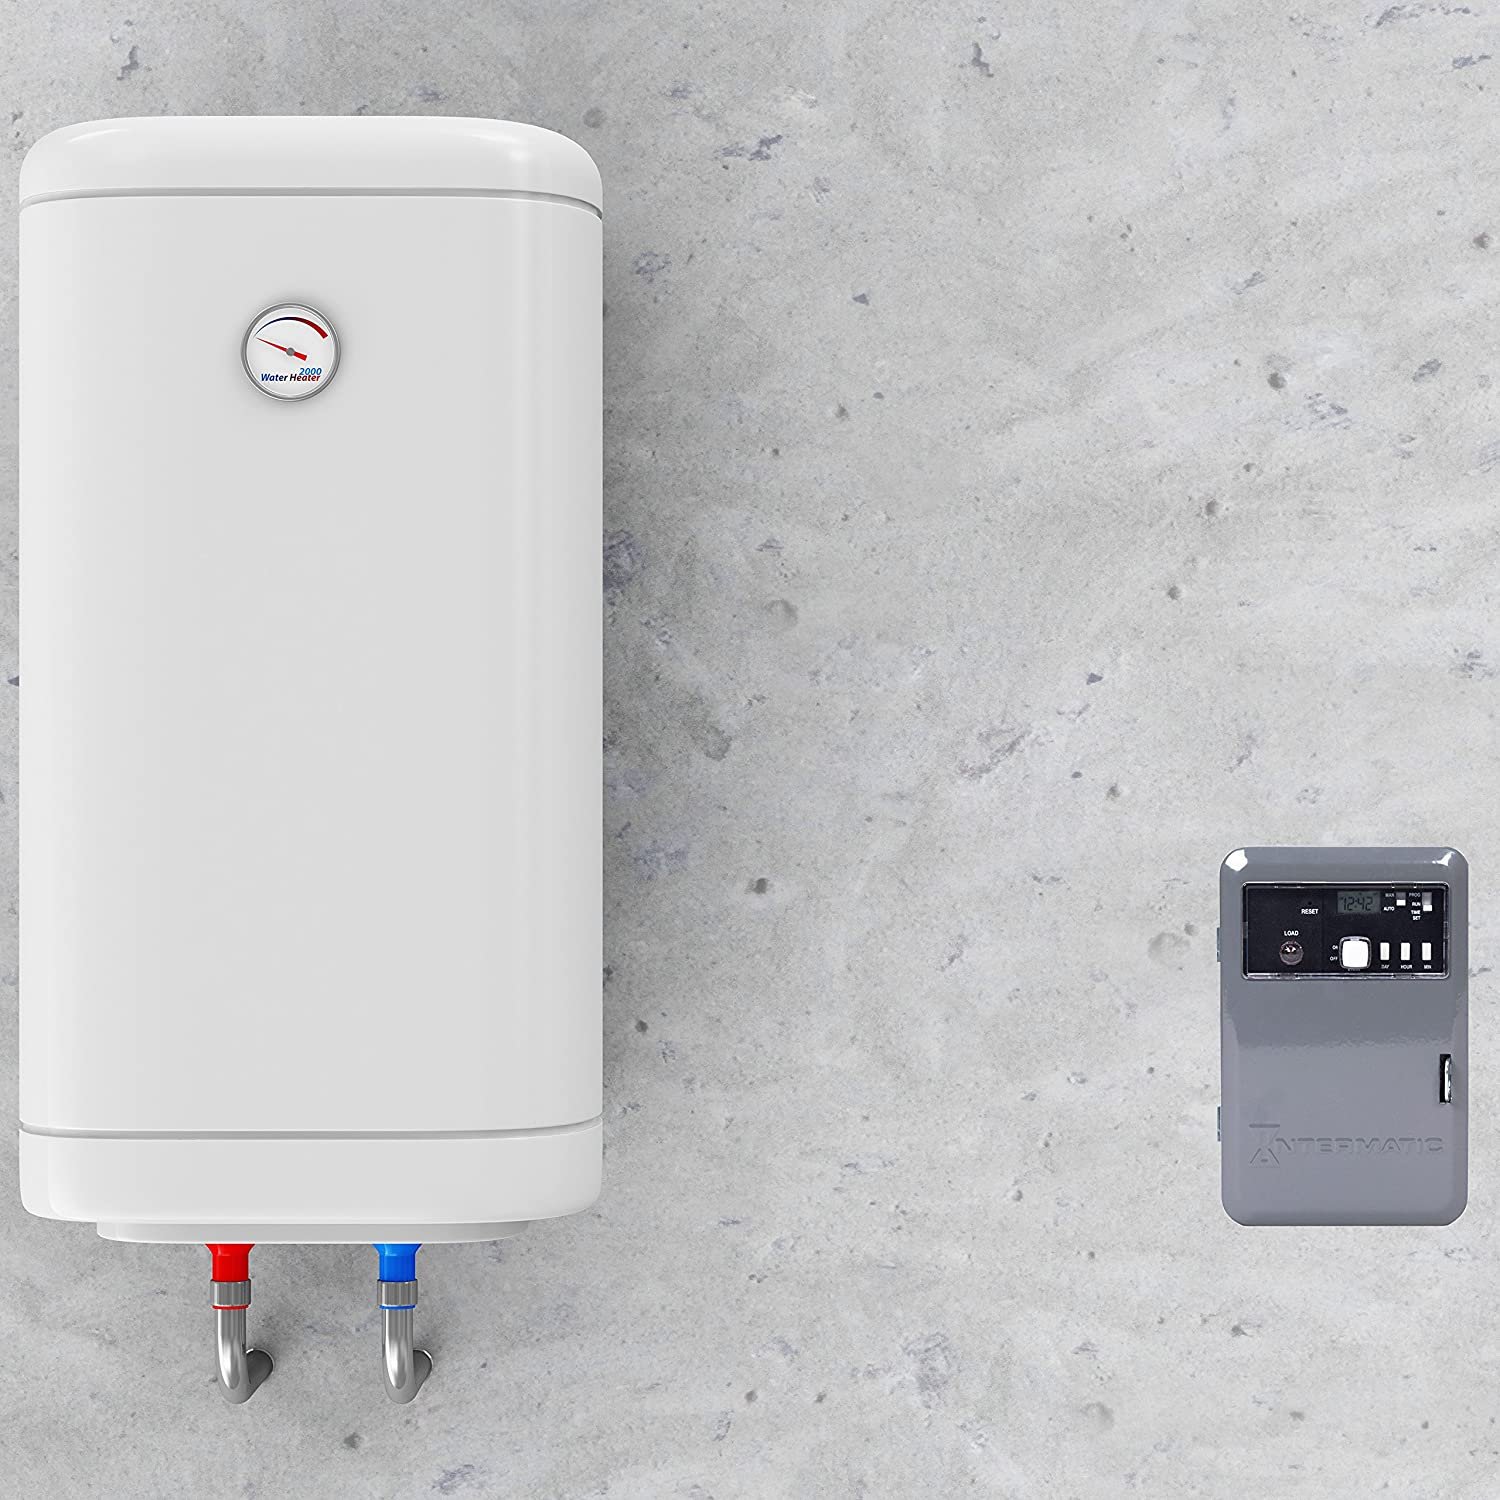 Intermatic Wh21 Water Heater Timer More About Electrical Home Improvements Wiring Diagrams And